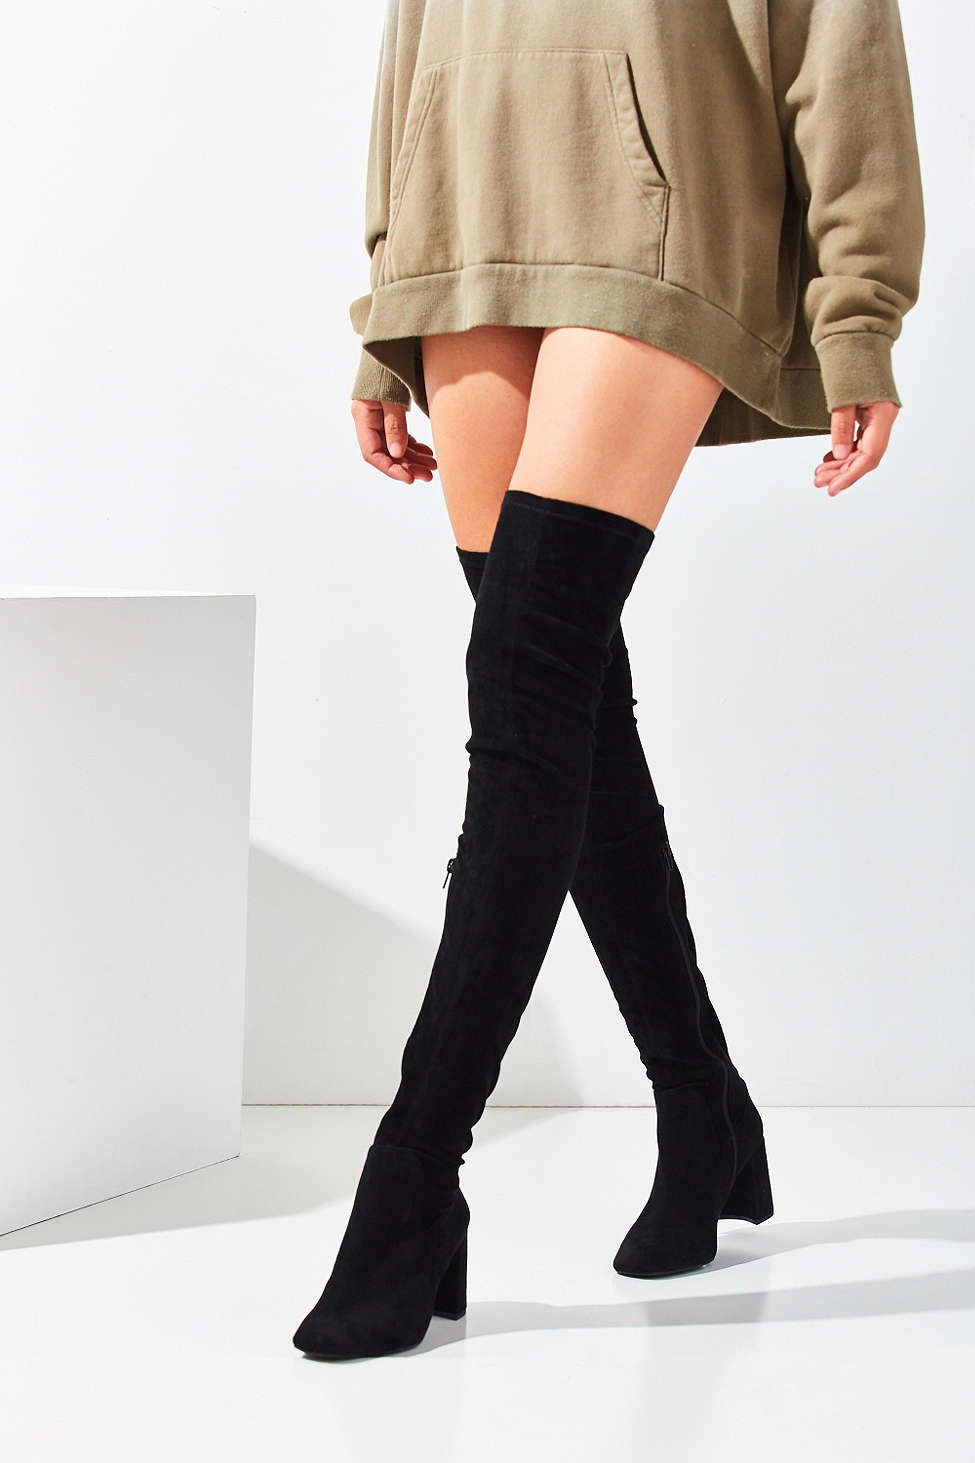 Hate Tights Wear Thigh High Boots Instead Racked